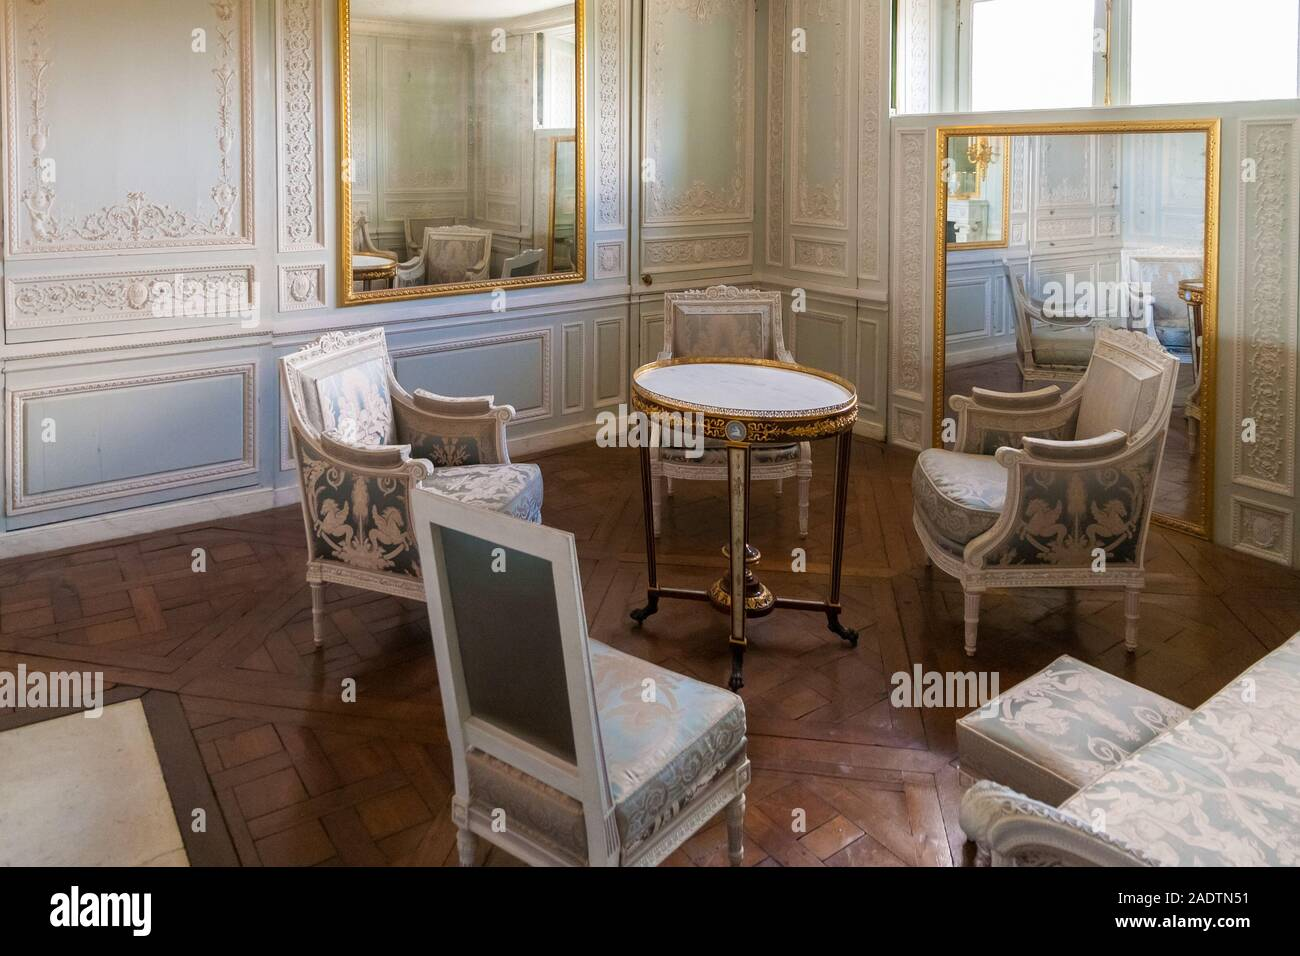 "Close view of the famous boudoir or ""moving mirror room"" in the Petit Trianon Palace in Versailles. The room has moving wall panels that could slide... Stock Photo"